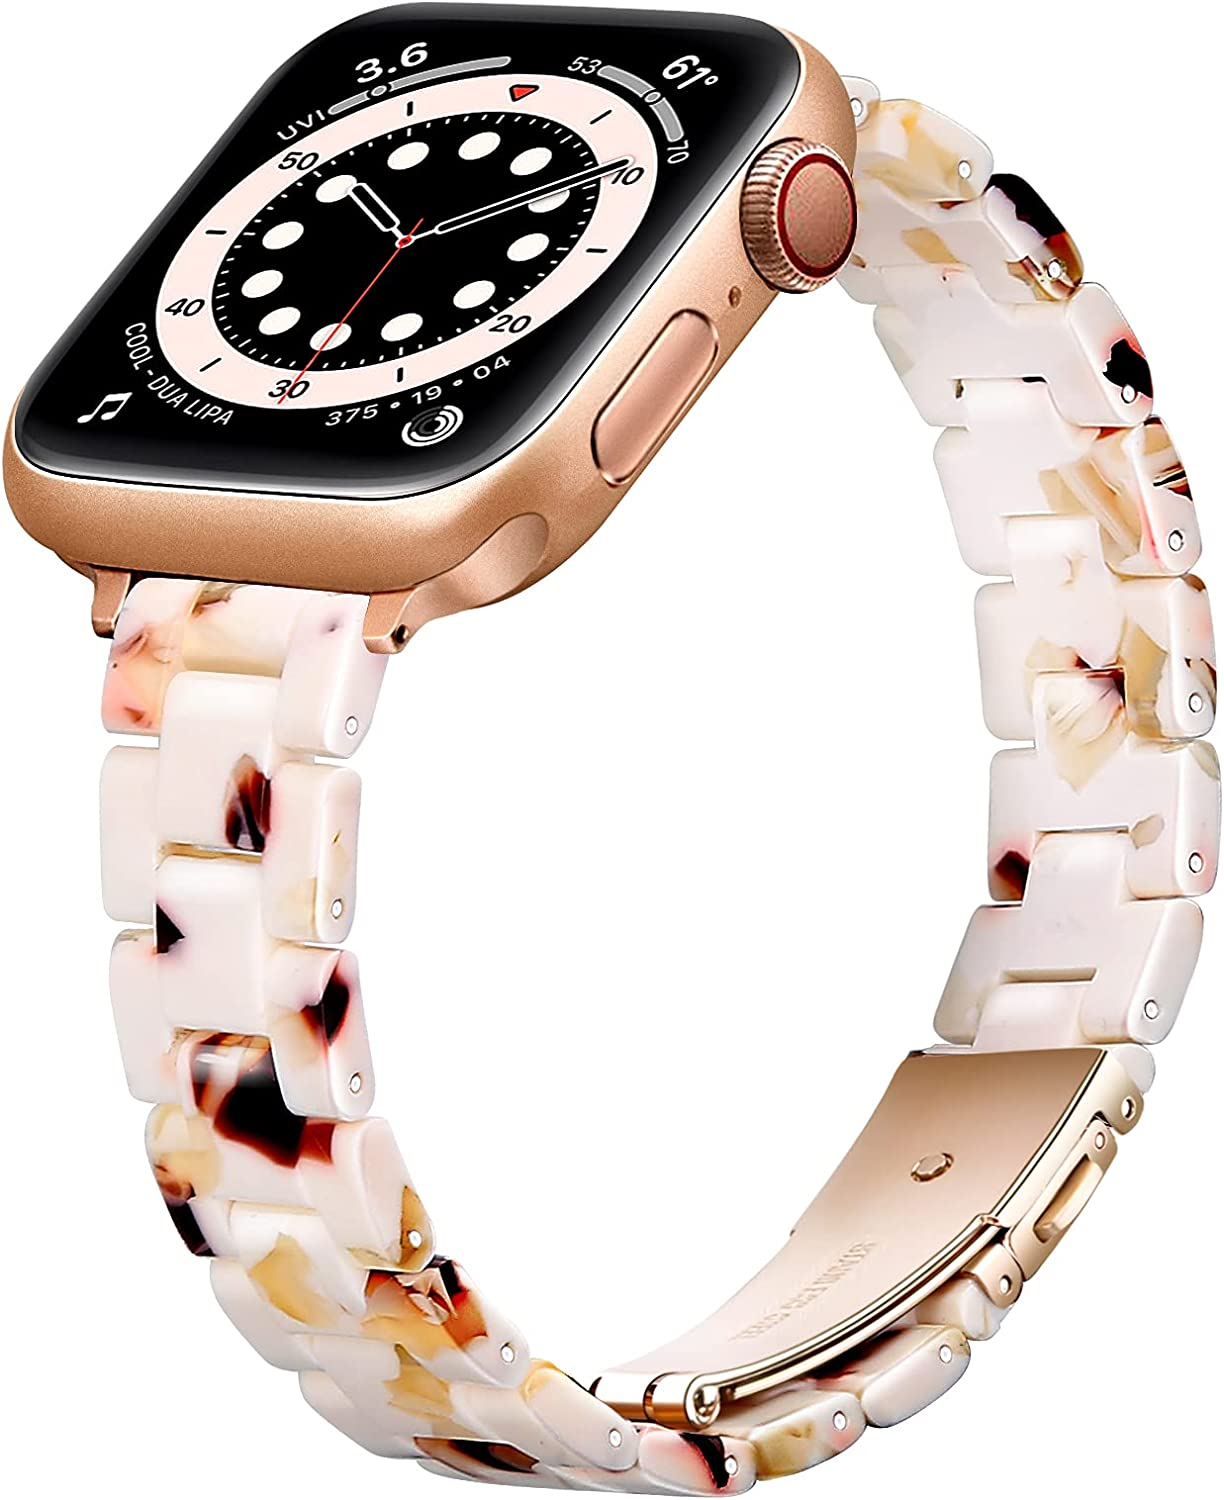 OUHENG Slim Resin Strap Compatible with Apple Watch Bands 40mm 38mm 44mm 42mm, Lightweight Thin Band with Metal Buckle for iWatch SE Series 6/5/4/3/2/1 (Bubbly Nougat White/Rose Gold, 40mm 38mm)